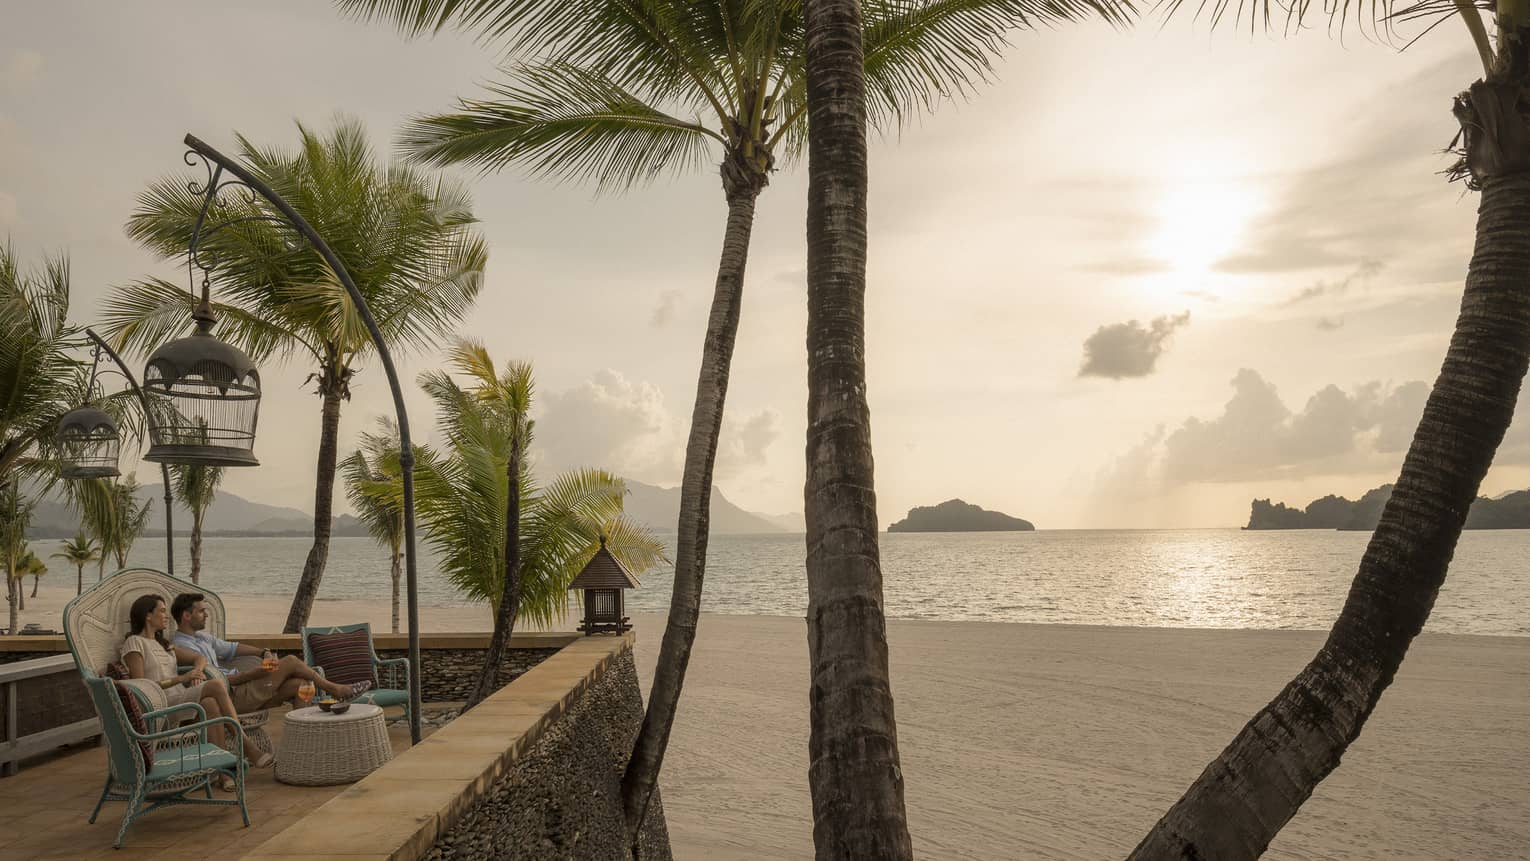 Upper Serai Sunset Lounge terrace overlooking the beach with view of palm trees